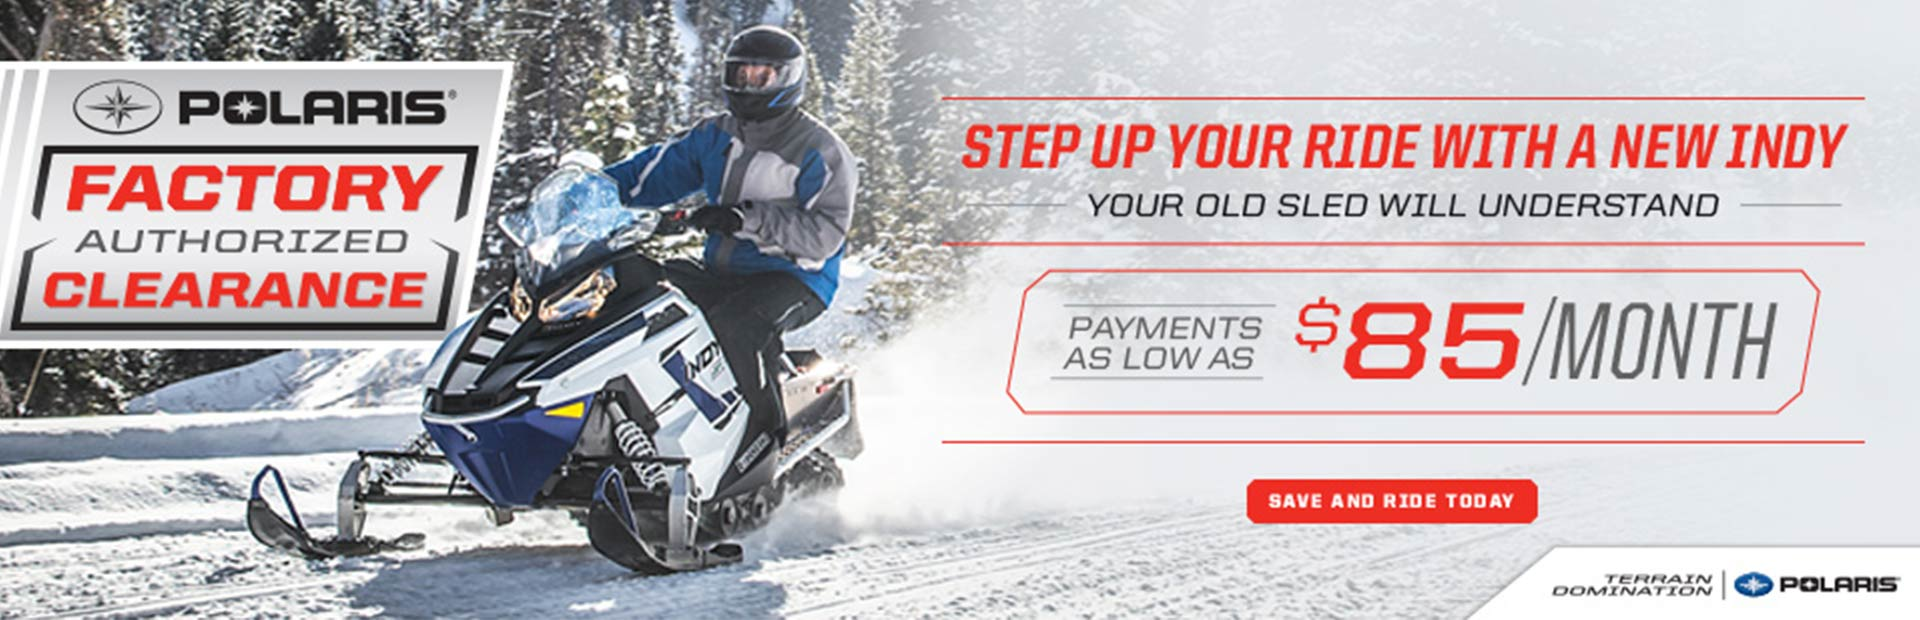 Polaris Factory Authorized Clearance (Snow)